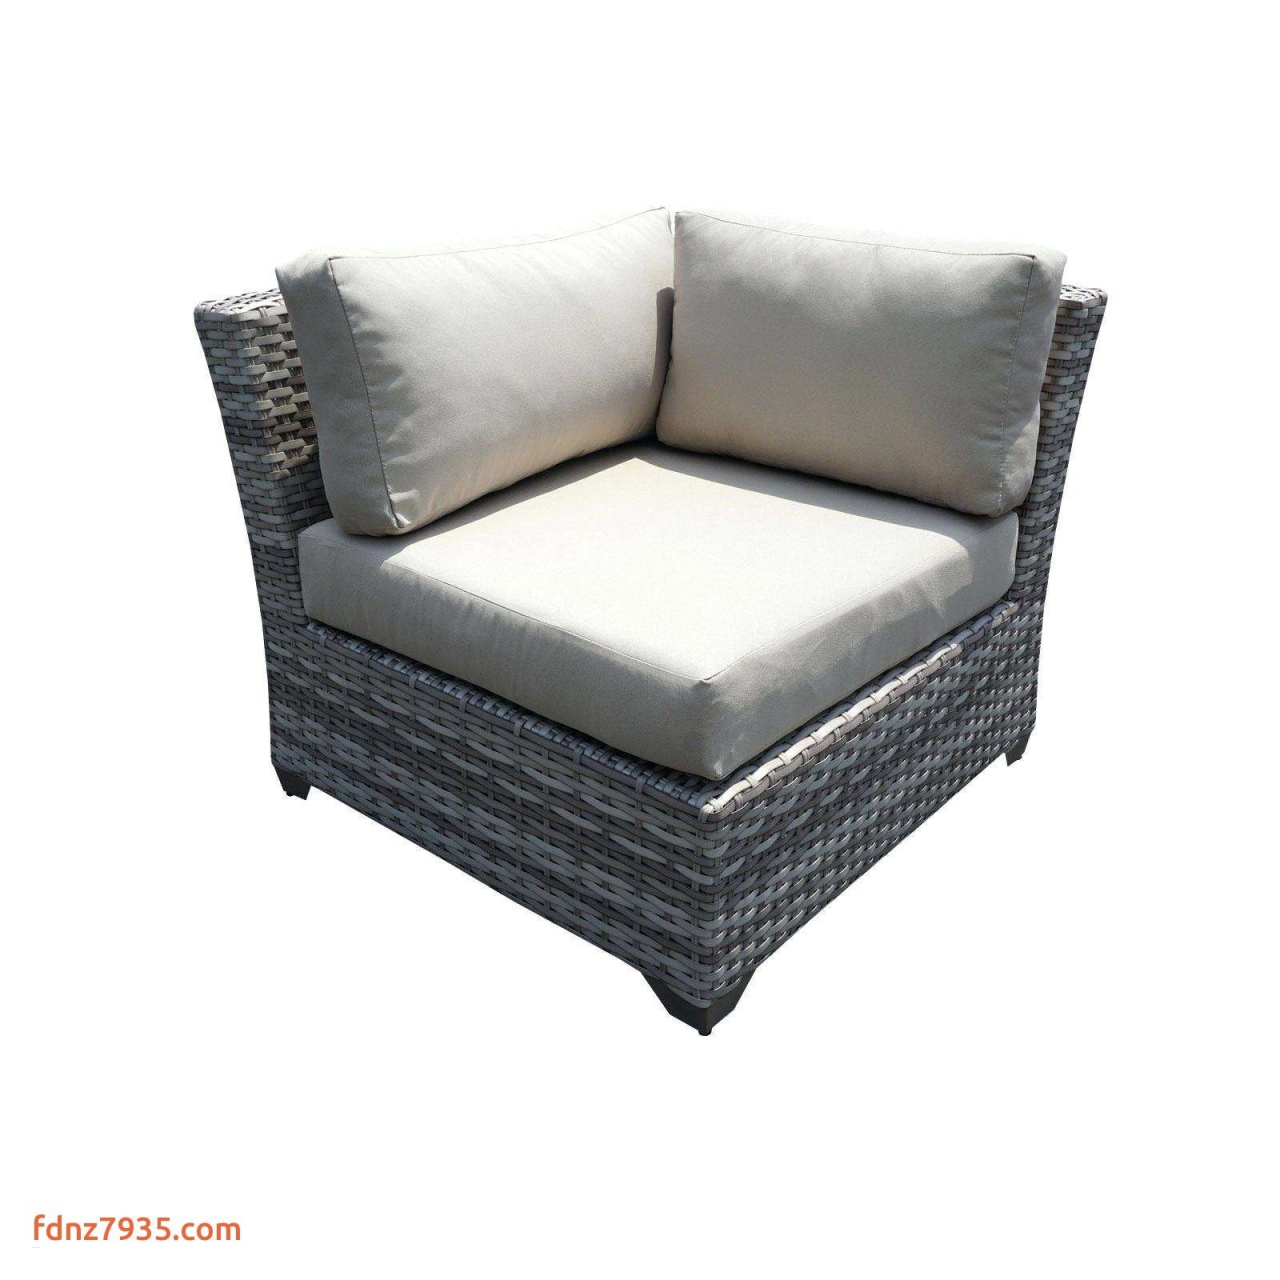 front porch chairs outdoor furniture webbing amazing agha patio chair covers agha durch front porch chairs